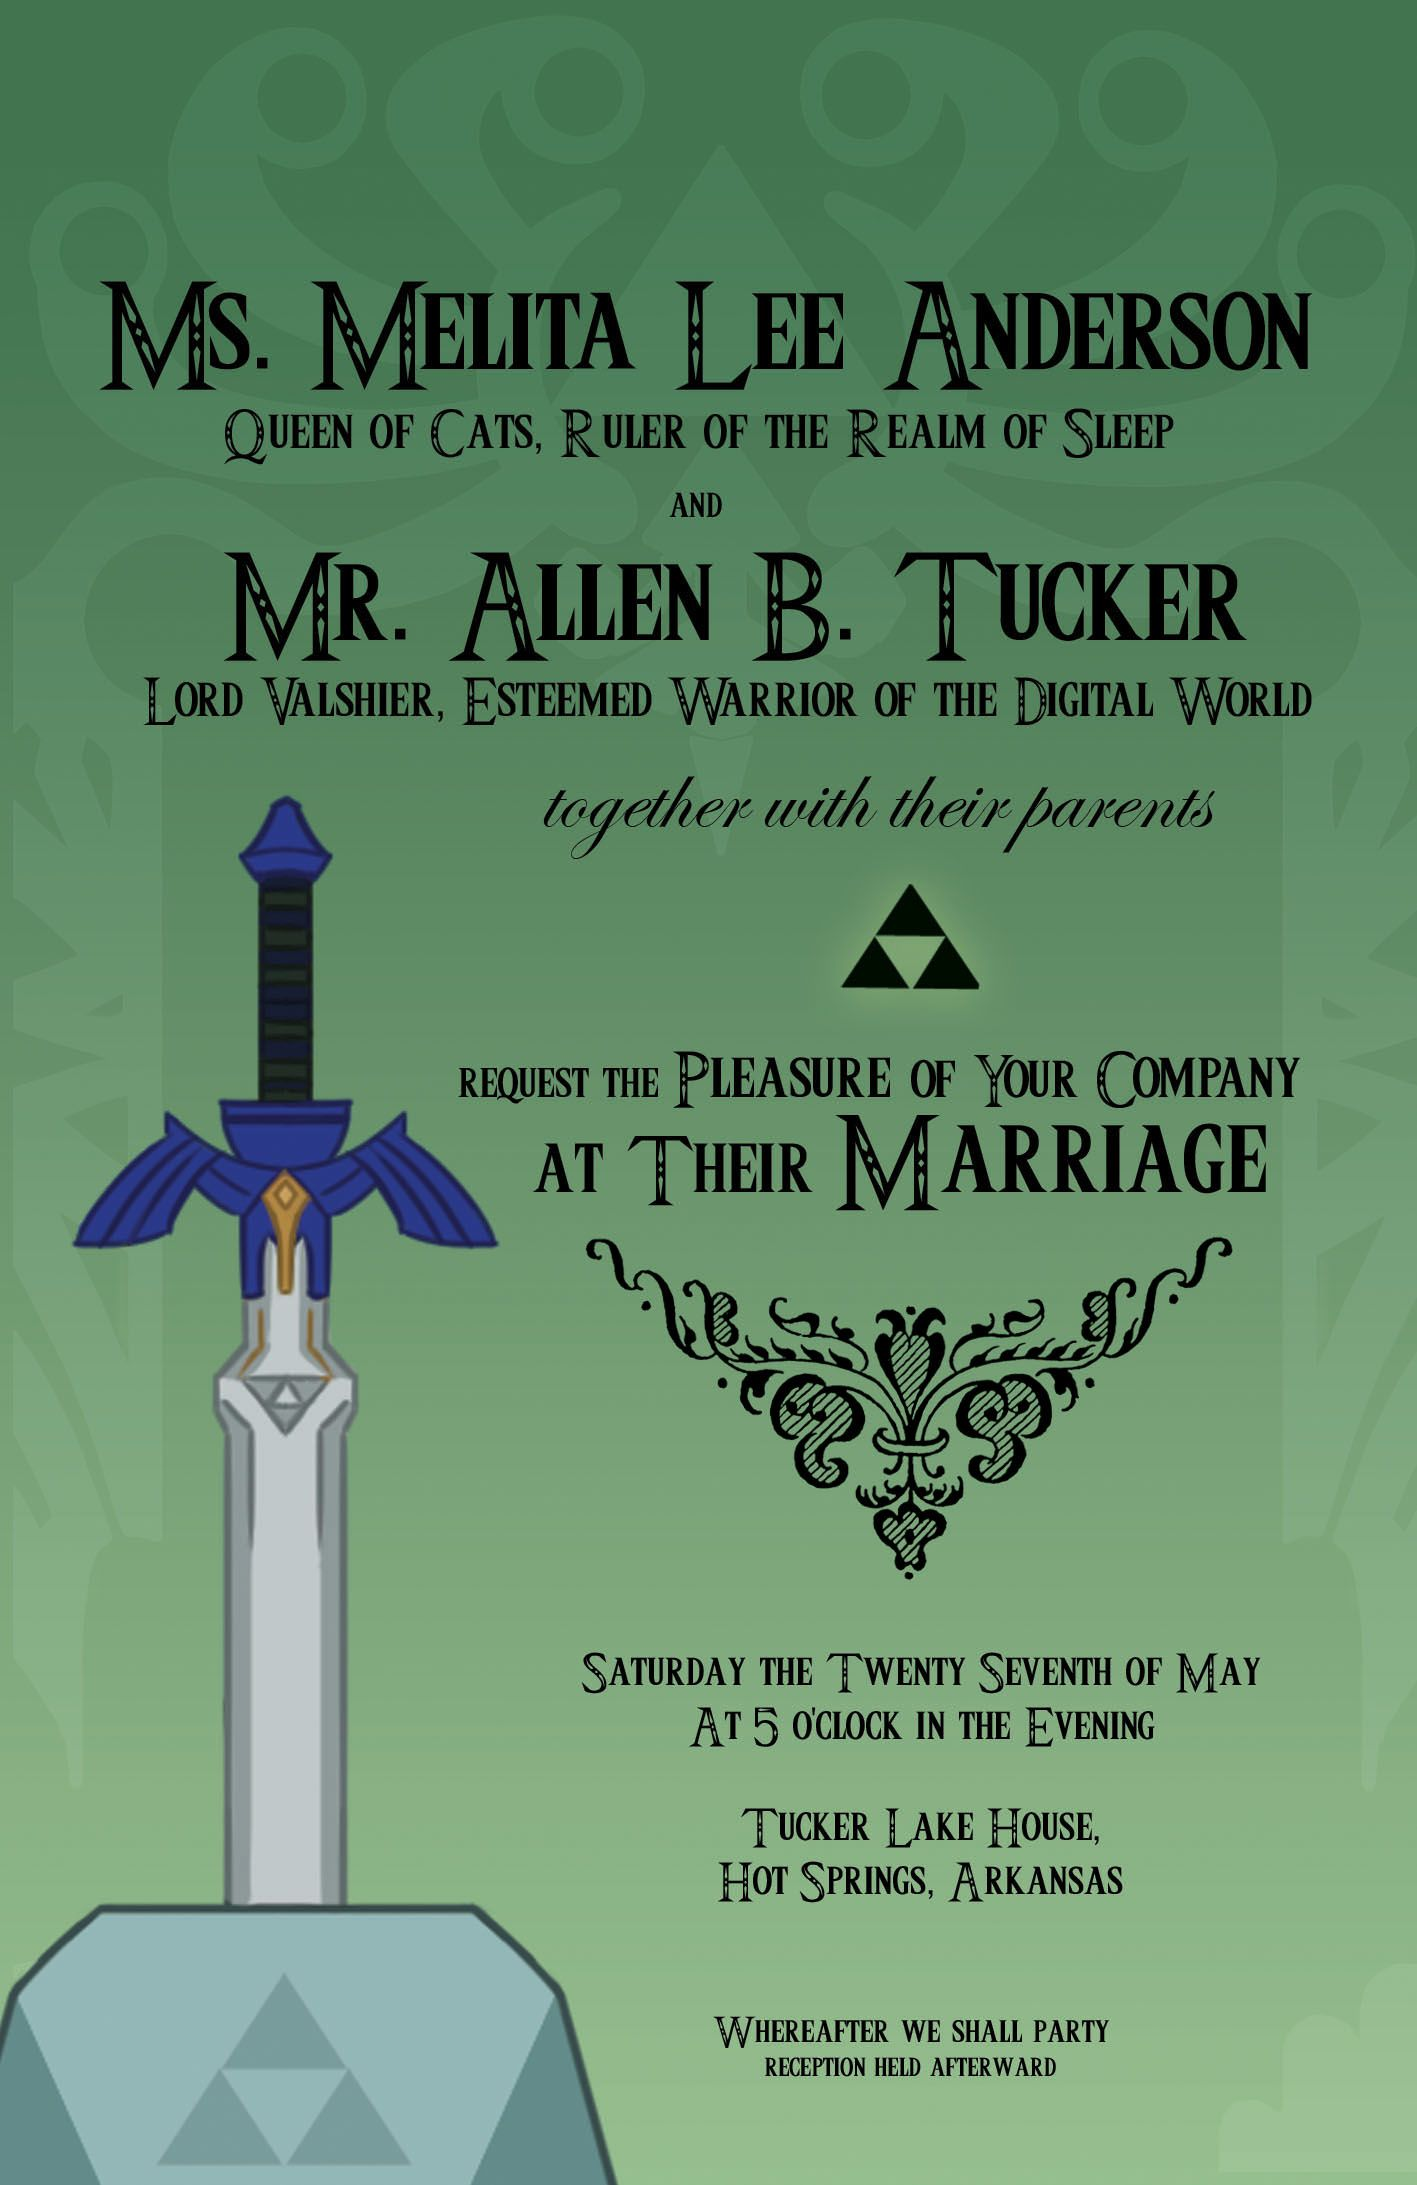 Printable legend of zelda wedding invitations both of us are printable legend of zelda wedding invitations both of us are big fans stopboris Choice Image